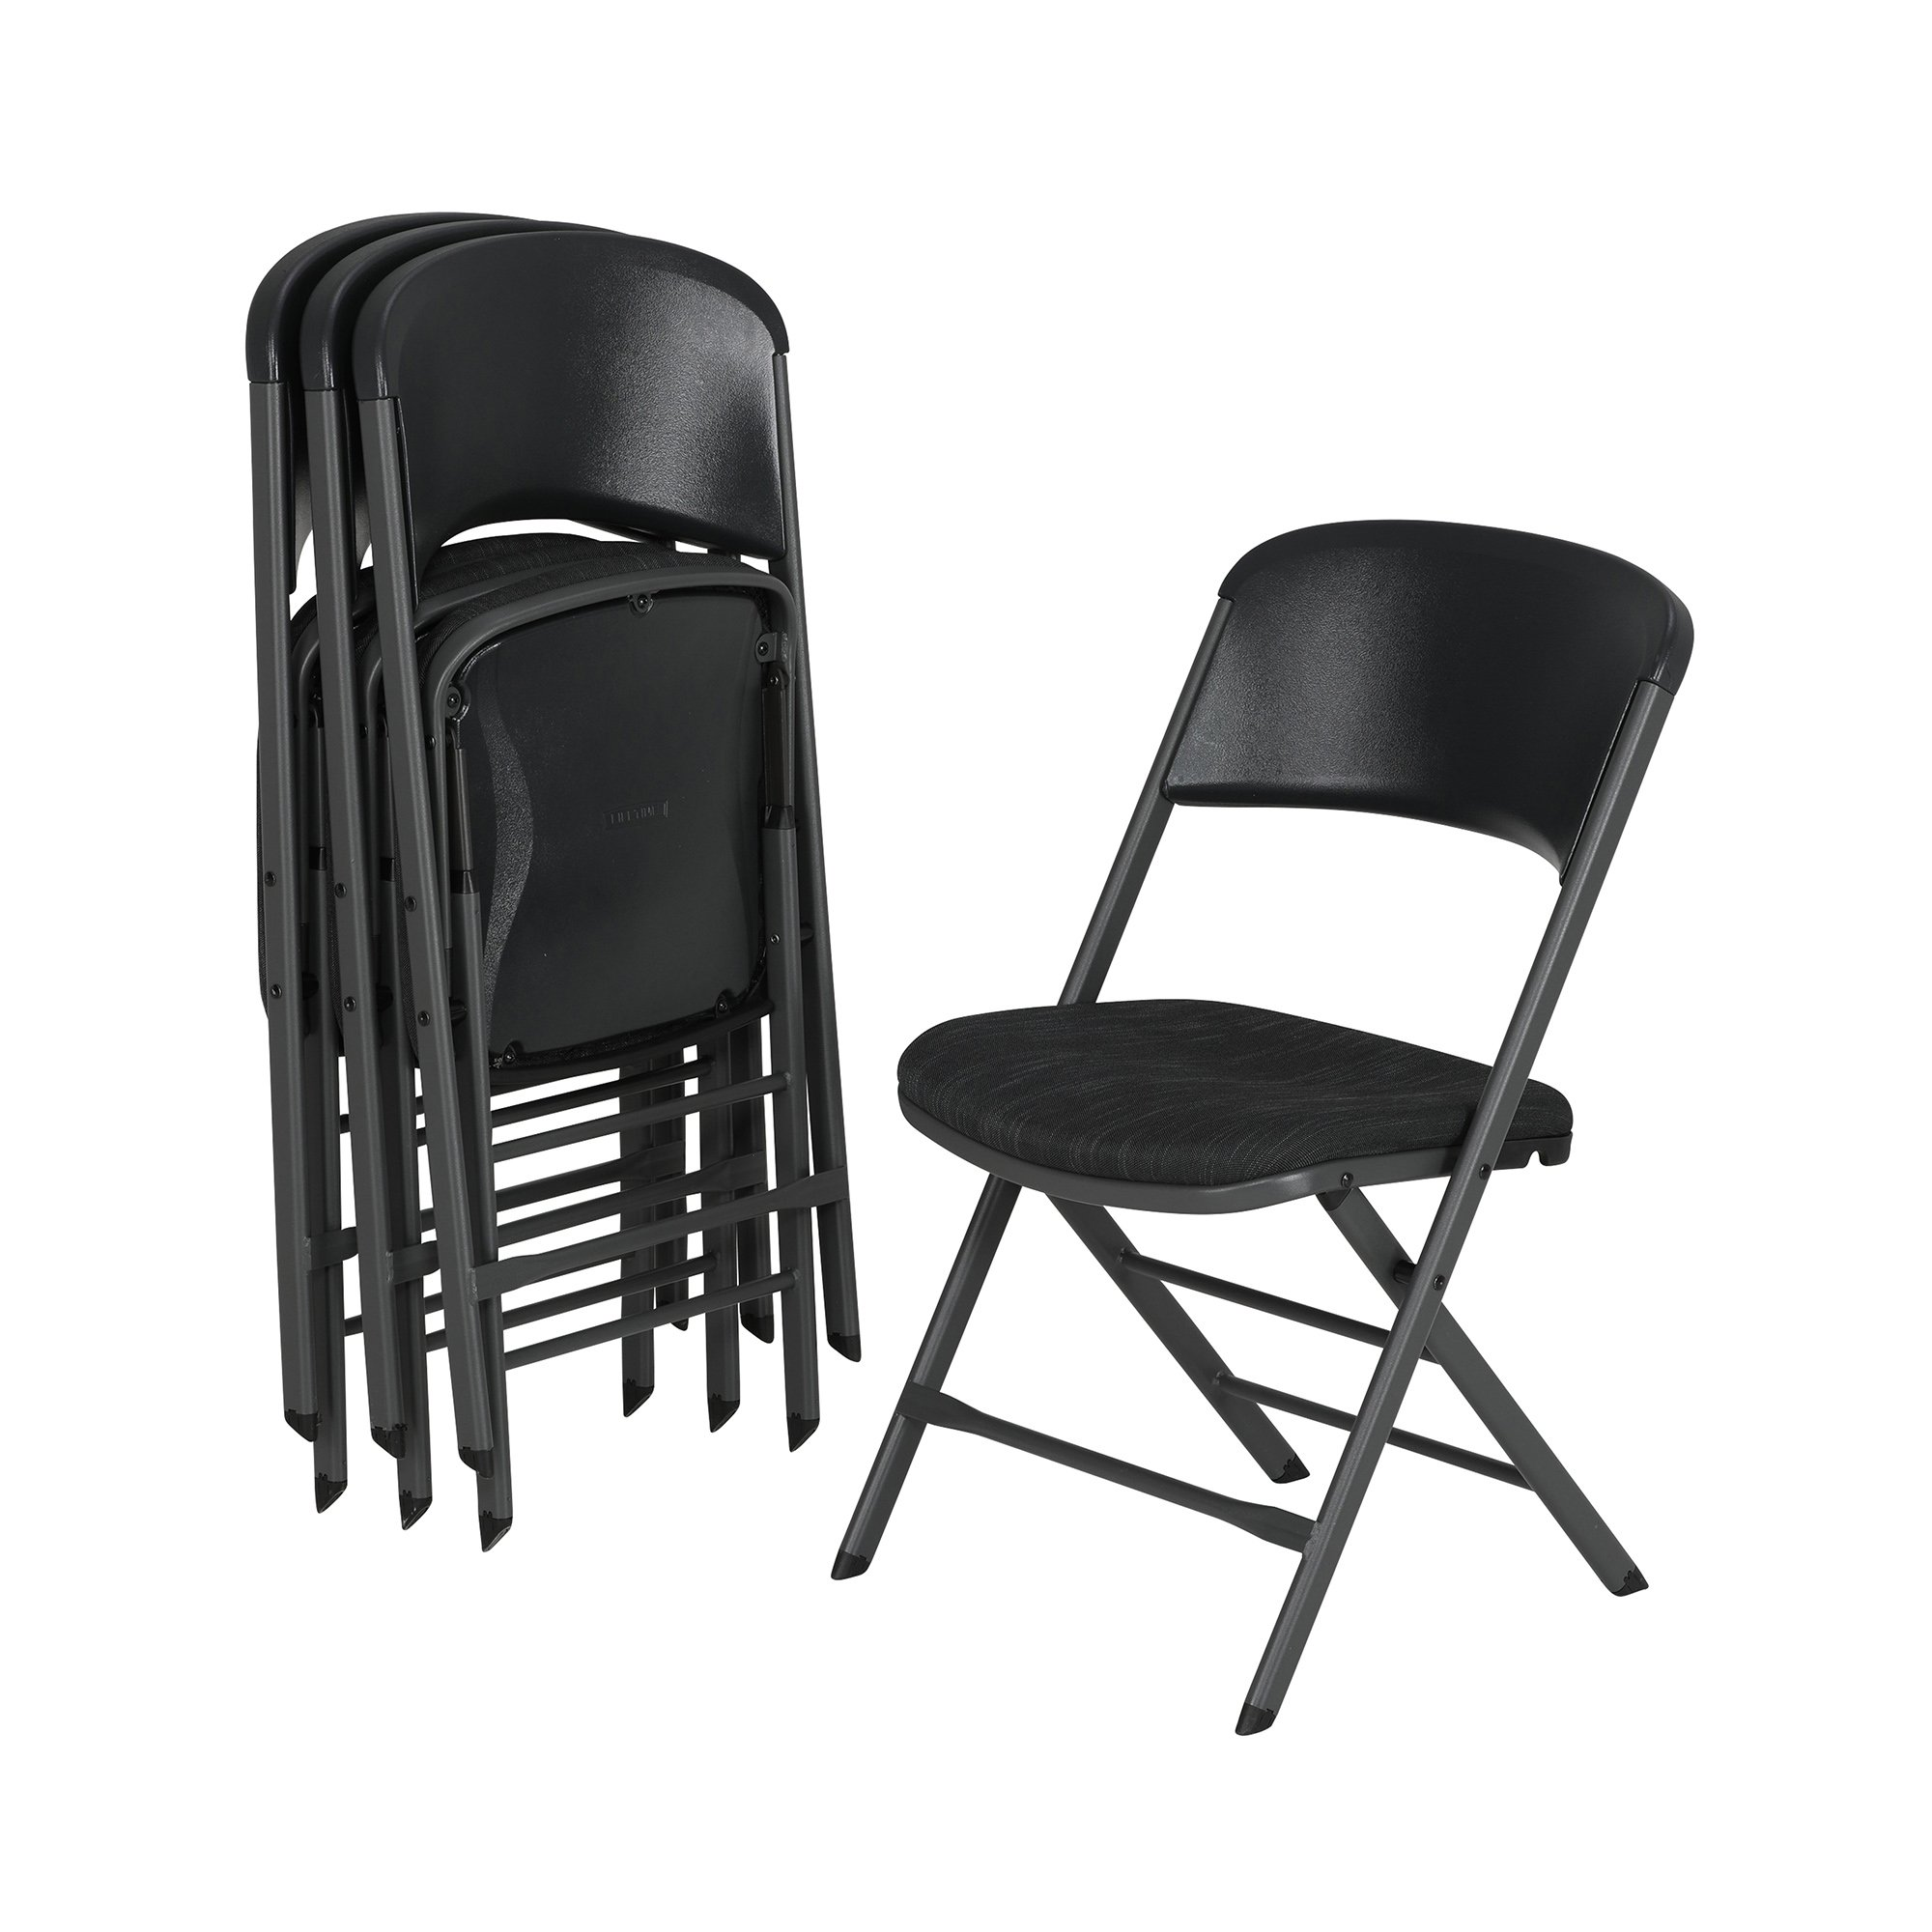 Lifetime 480621 Contemporary Padded Folding Chairs (4 Pack), Charcoal Gray